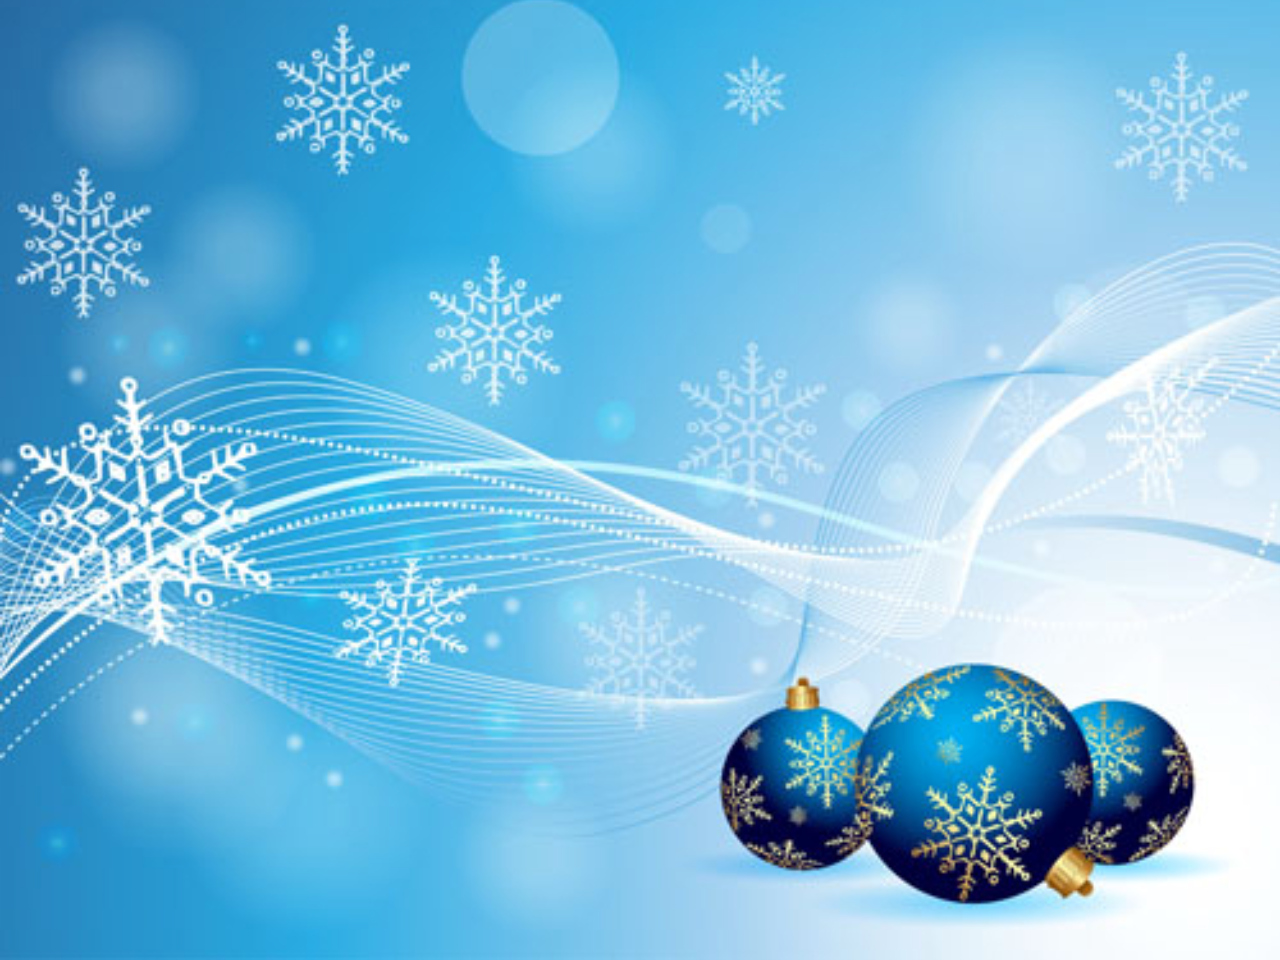 Free christmas wallpapers - Free christmas images for desktop wallpaper ...